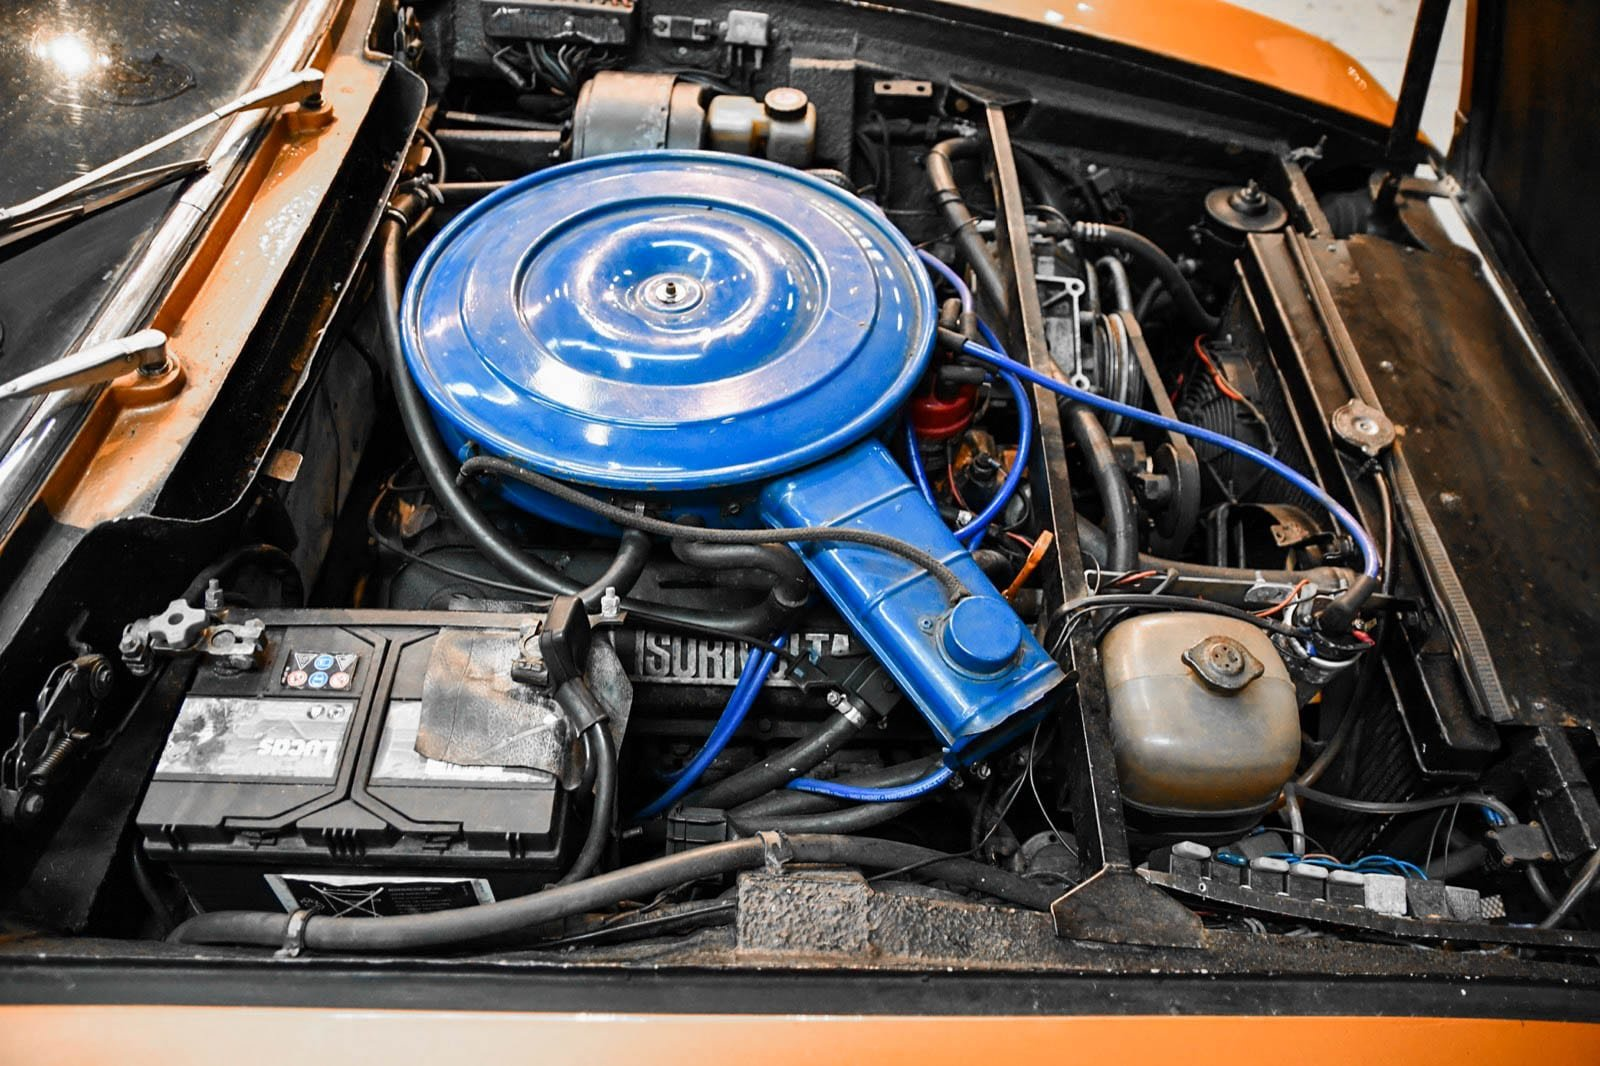 Iso Rivolta Fidia 1972 For Sale by Auction (picture 6 of 6)